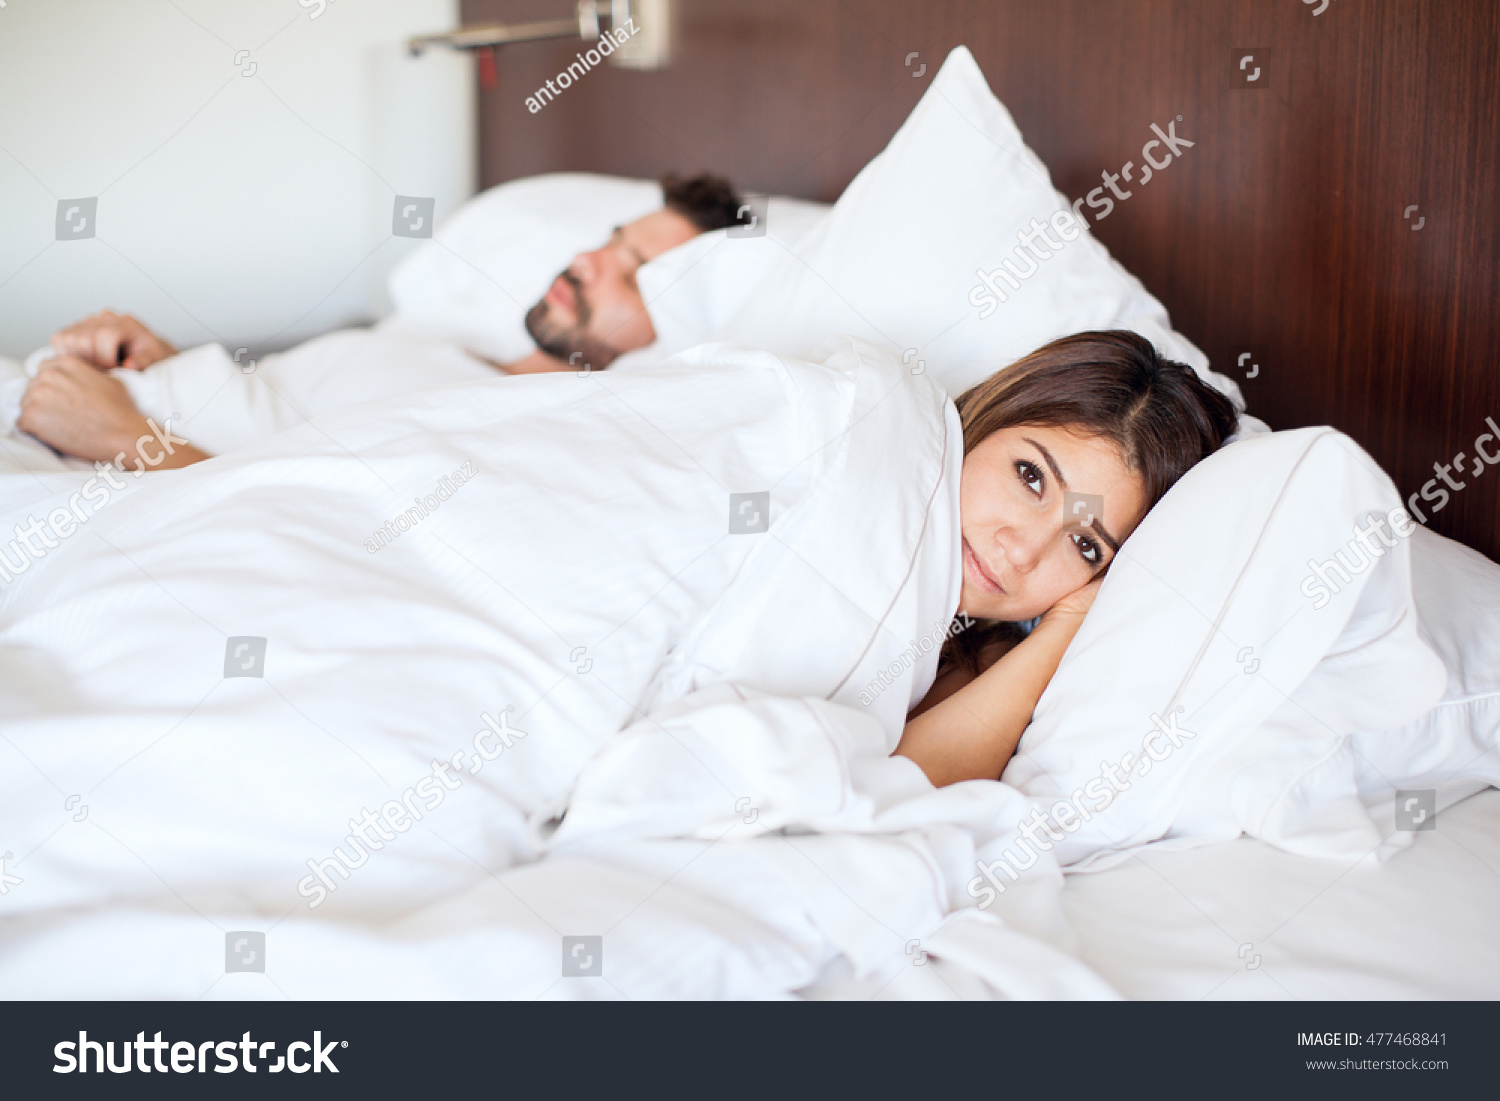 portrait beautiful brunette staying awake while stock photo portrait of a beautiful brunette staying awake while her partner sleeps next to her